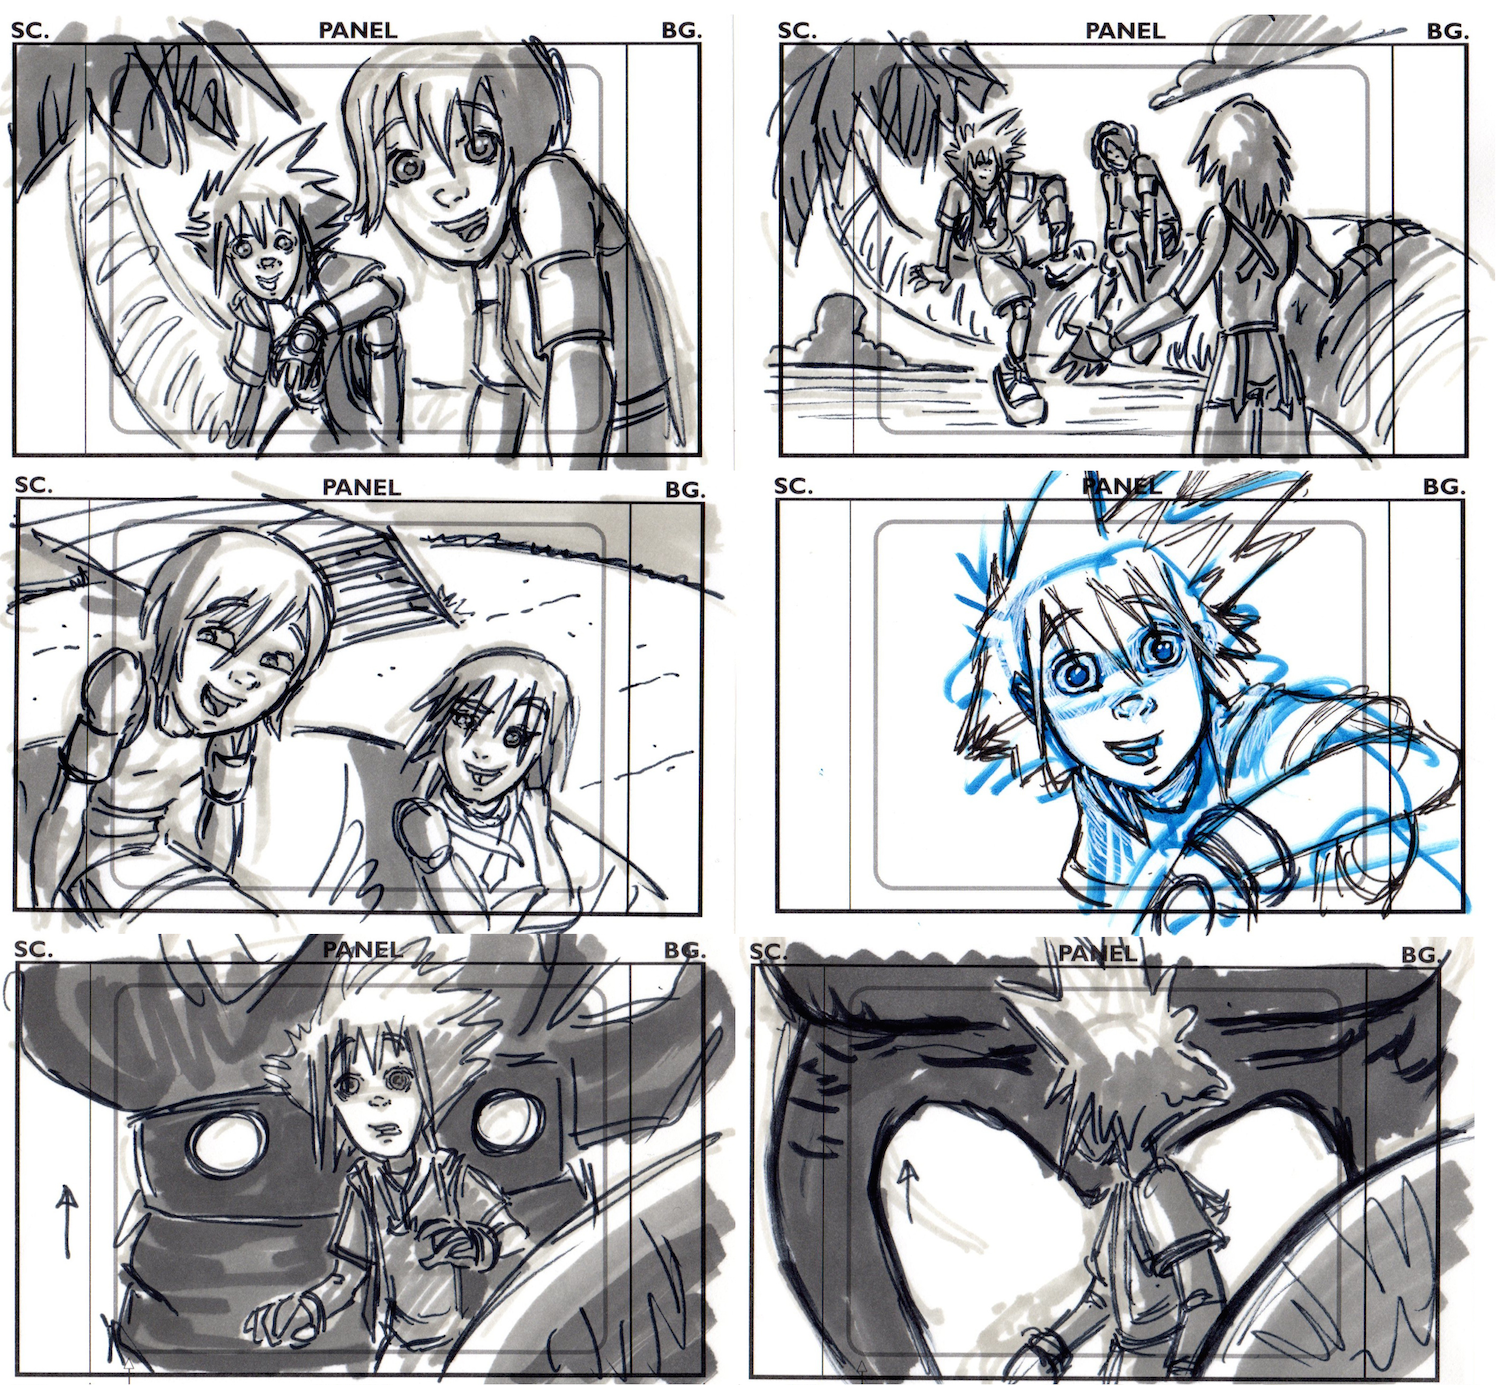 Kingdom Hearts (Unfinished and Cancelled Disney Show)